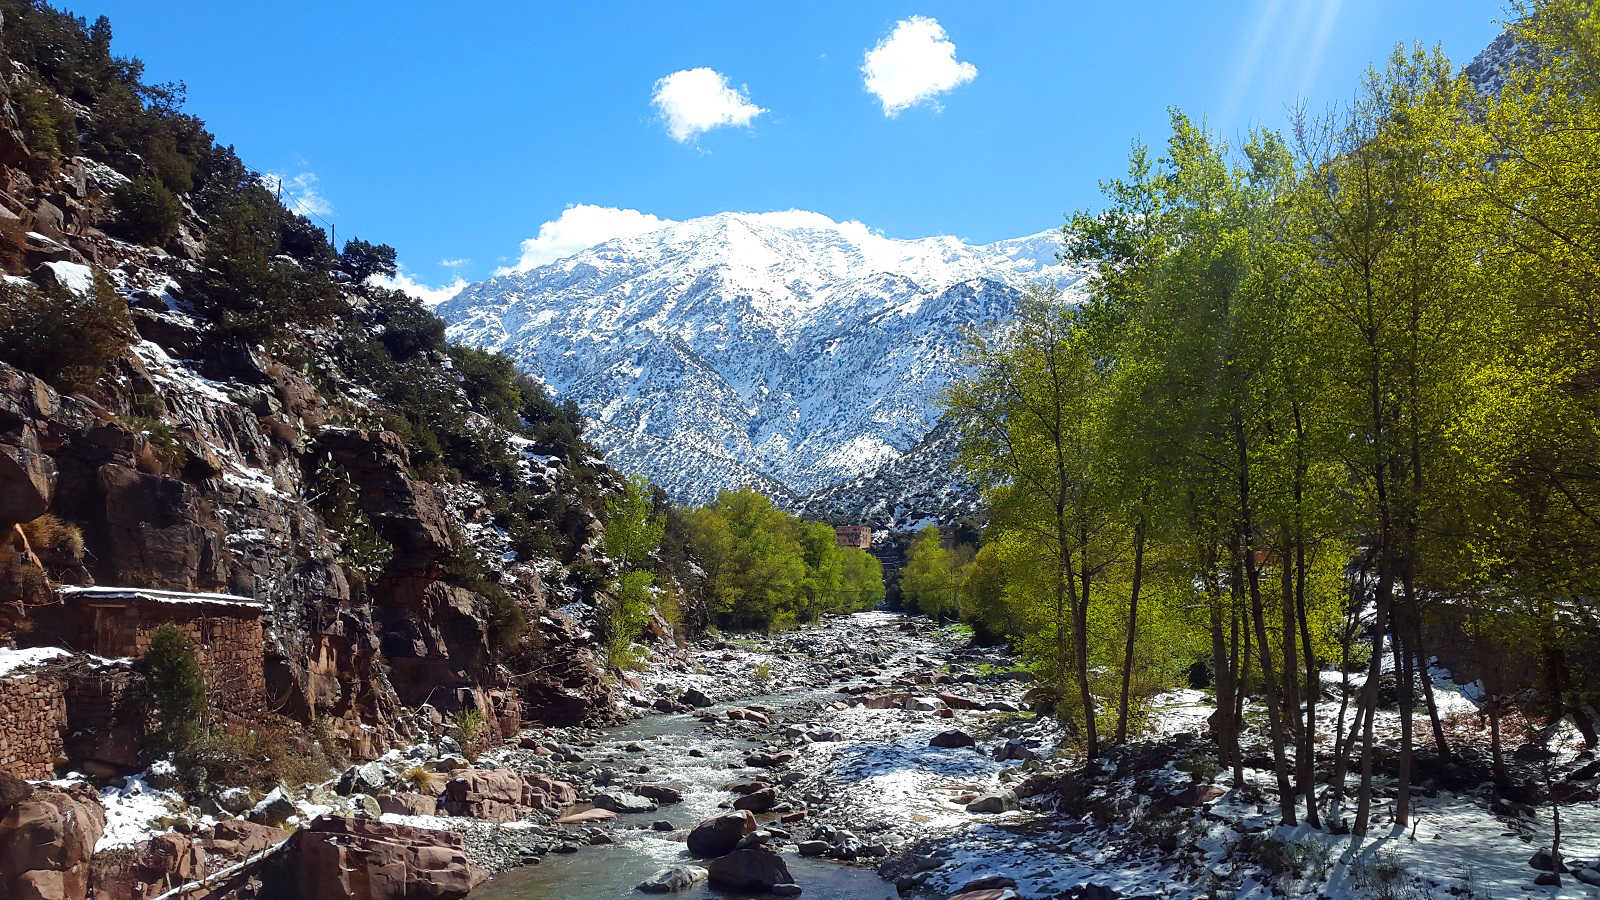 1 Day Trip To Atlas Mountains 5 Valleys From Marrakech